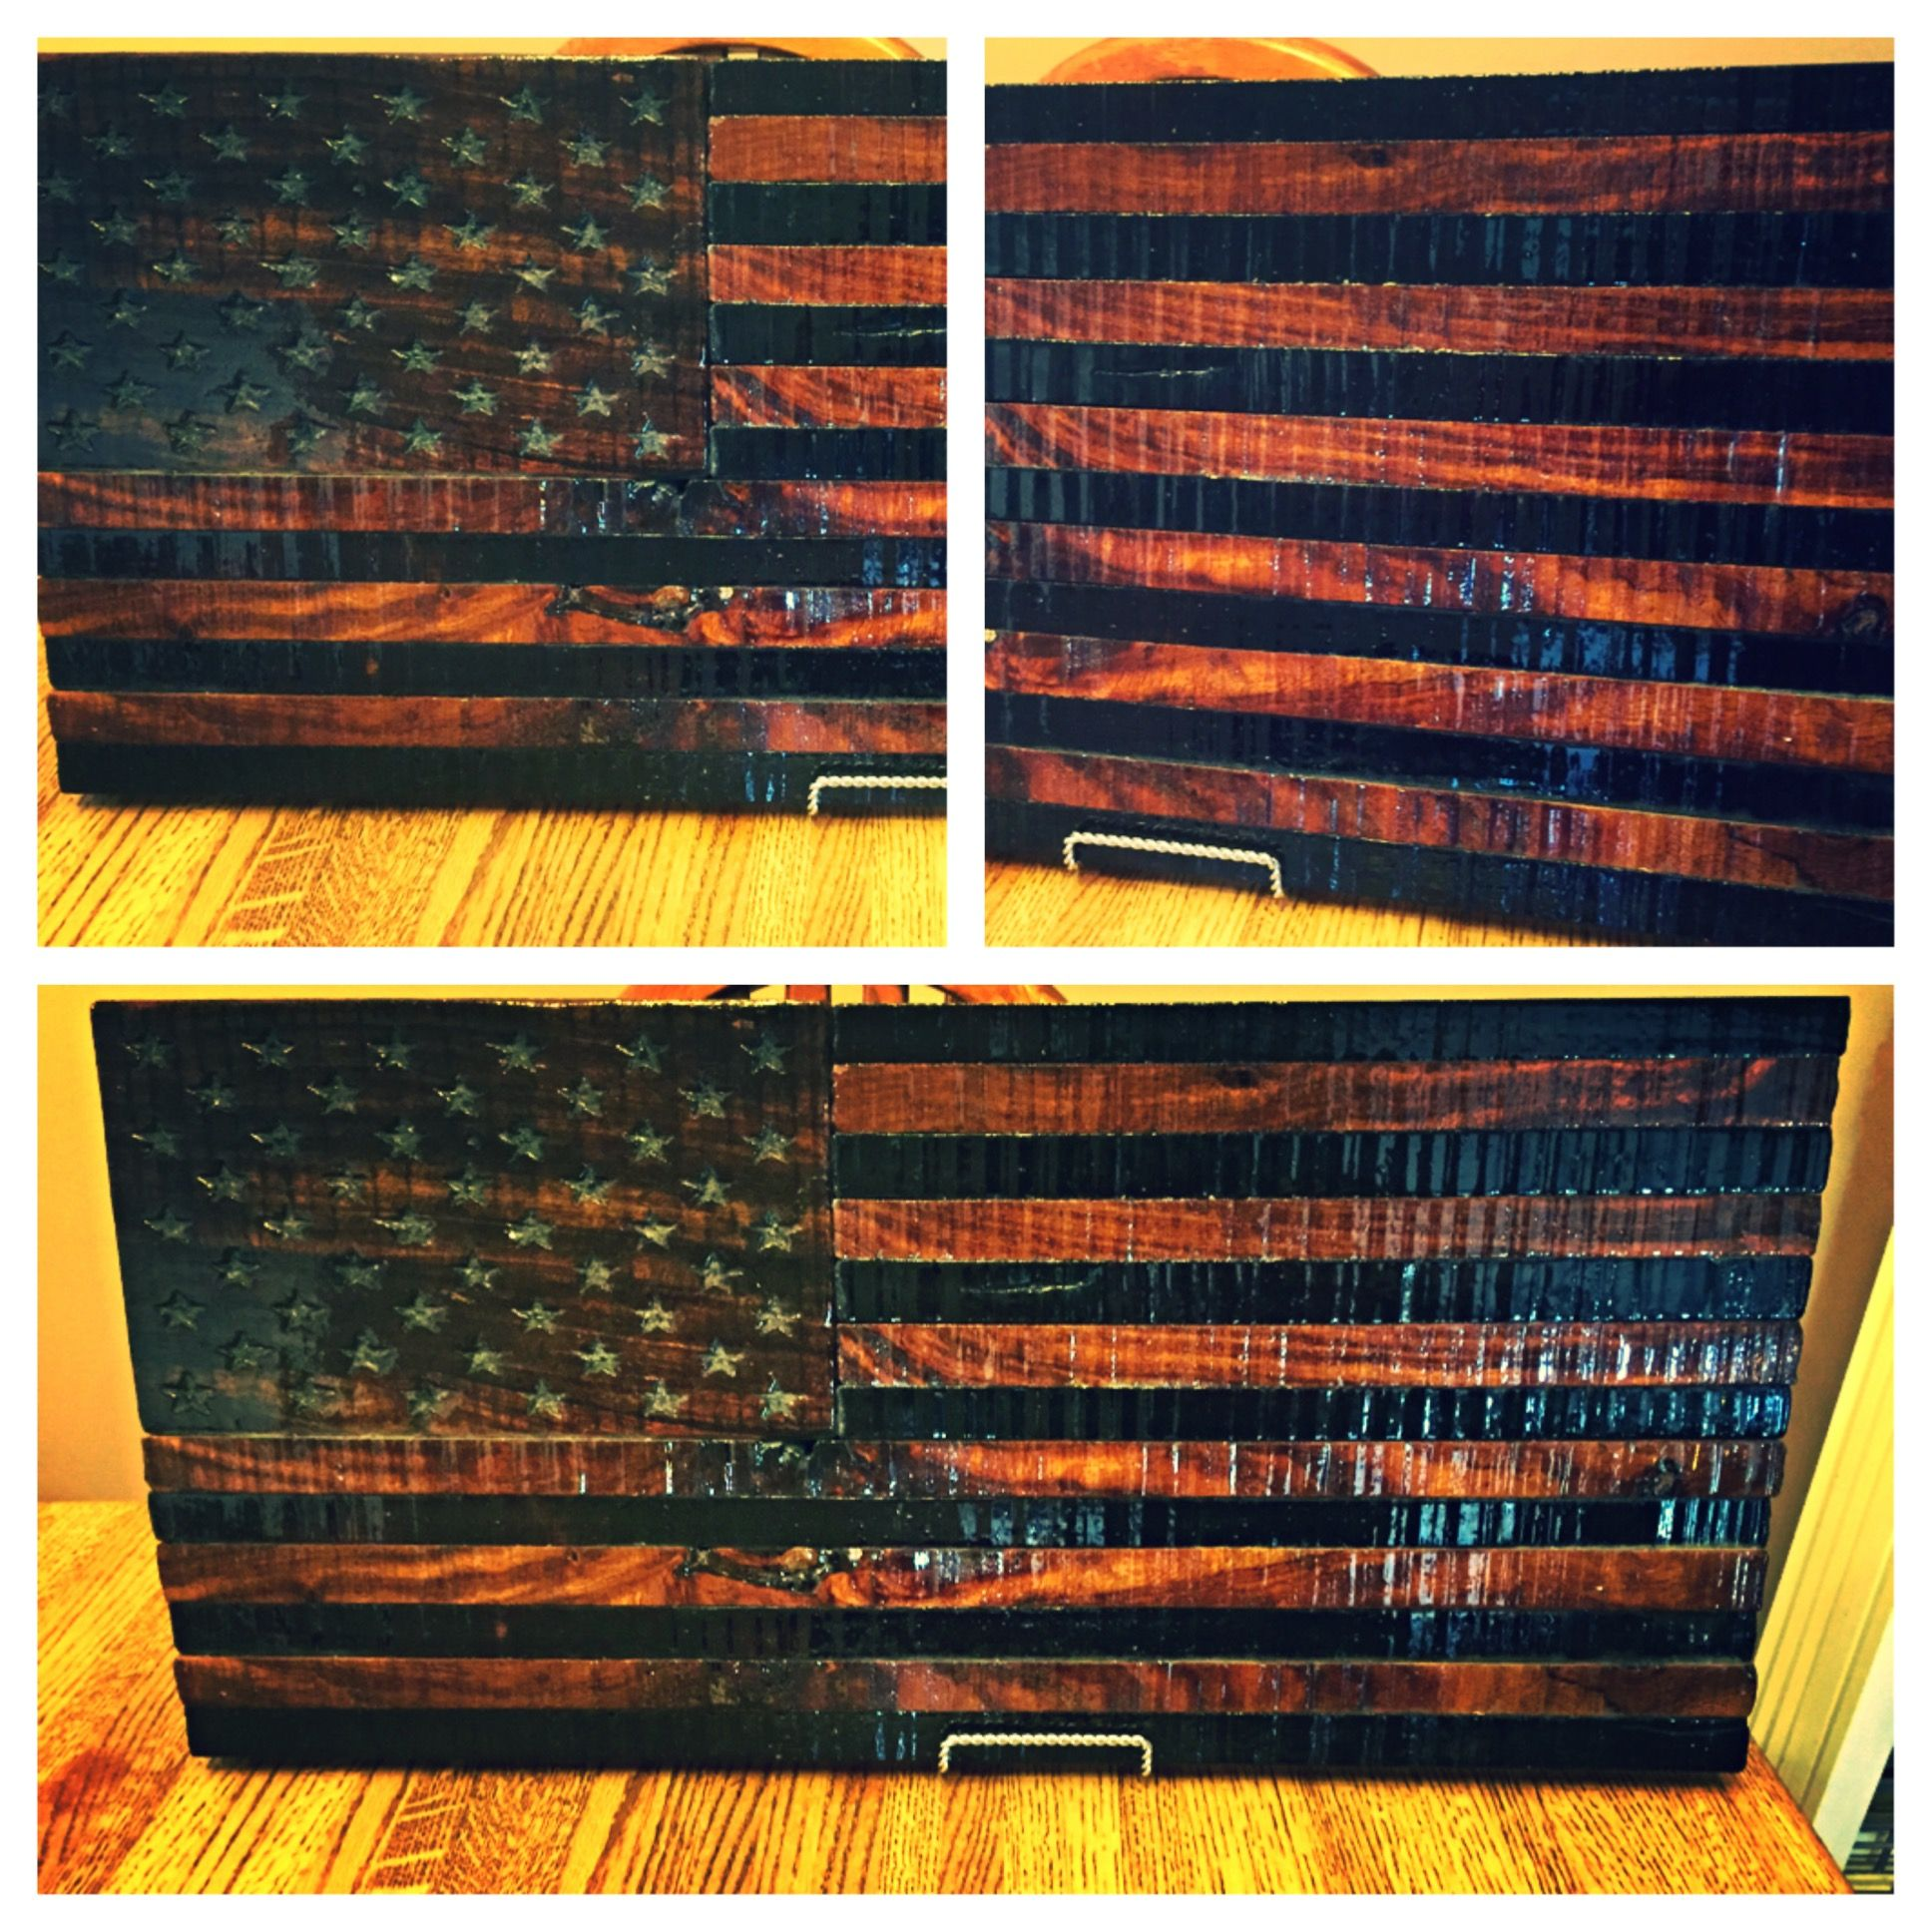 Custom Rustic Wooden American Flag By Torched Metal Works